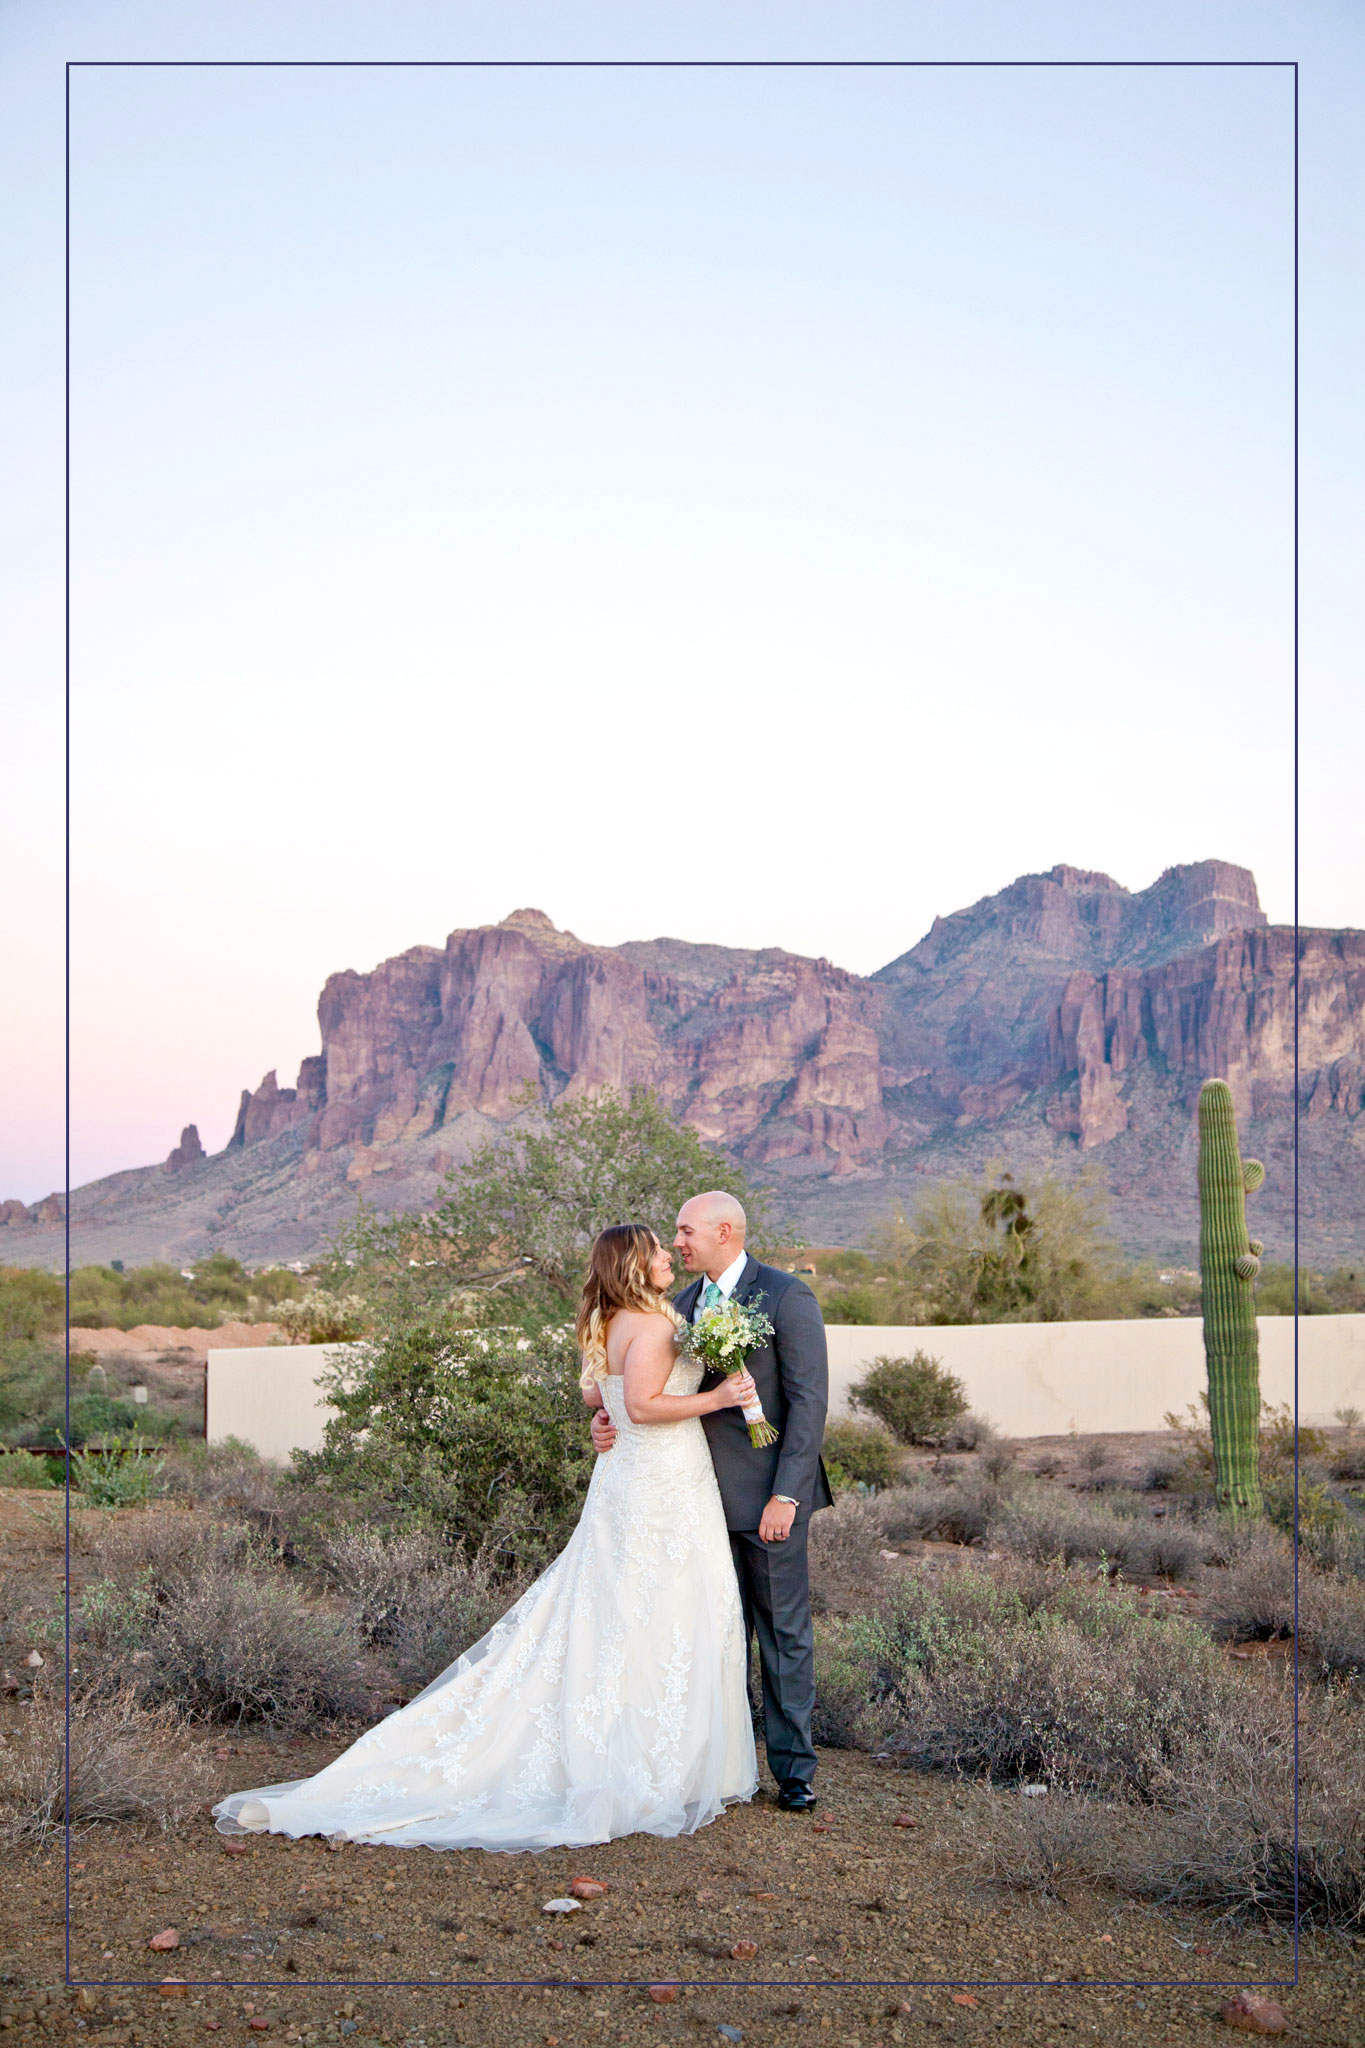 teresa valencia photography the paseo superstition mountains wedding.jpg